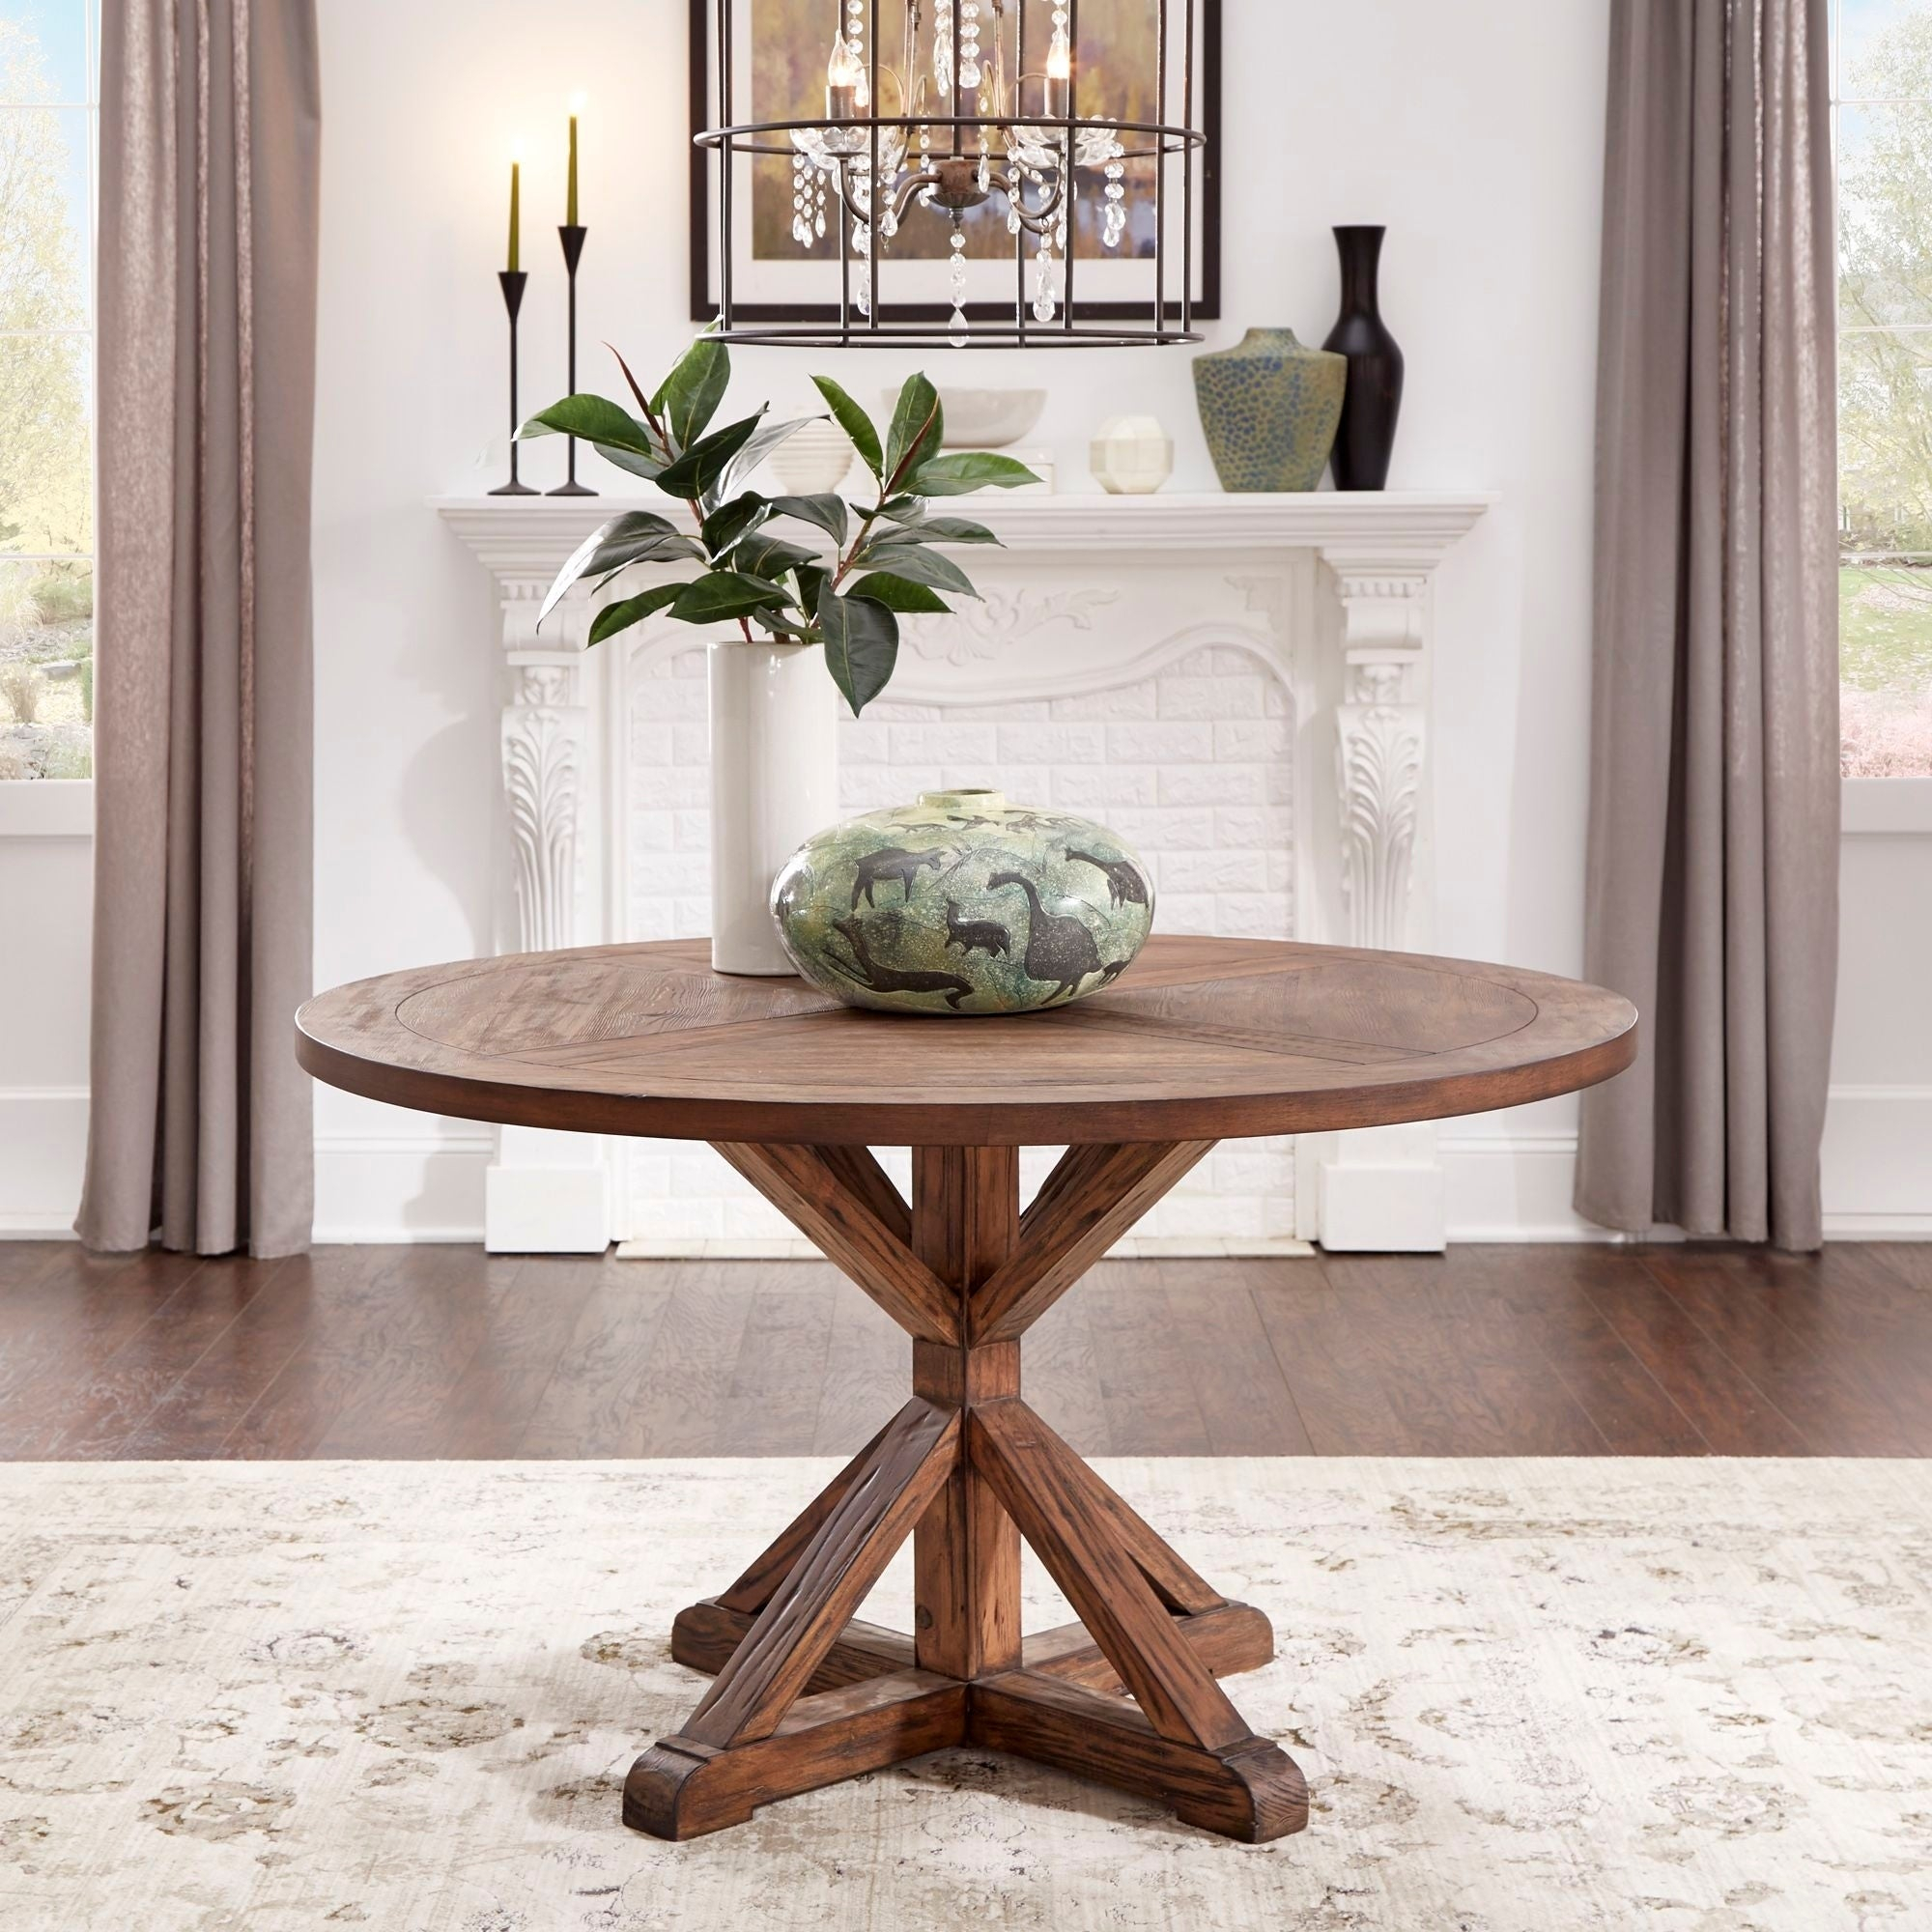 Benchwright Brown Finish Round Dining Tableinspire Q Artisan Within Newest Benchwright Round Pedestal Dining Tables (View 8 of 25)